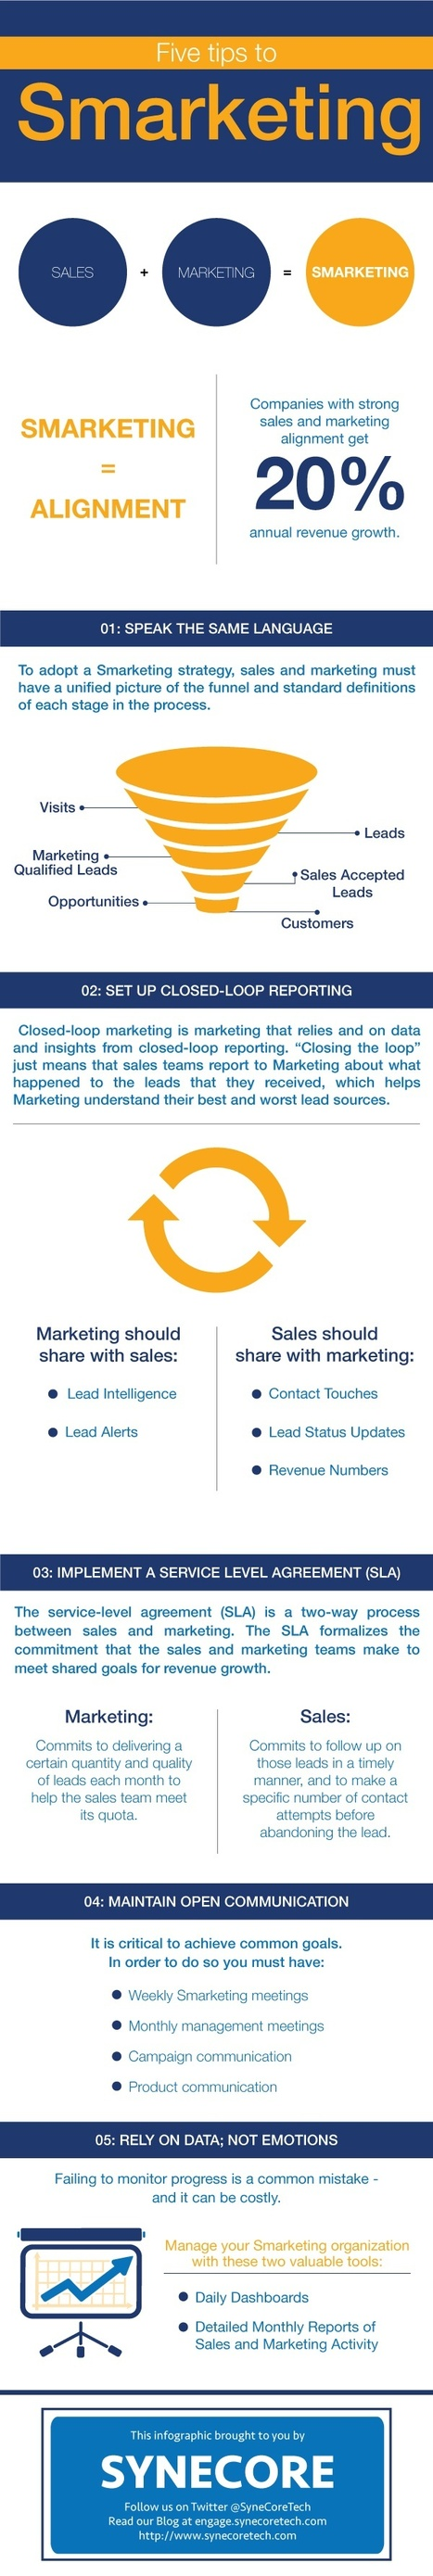 5 Tips for Smarketing [INFOGRAPHIC]   Social Media as Marketing   Scoop.it